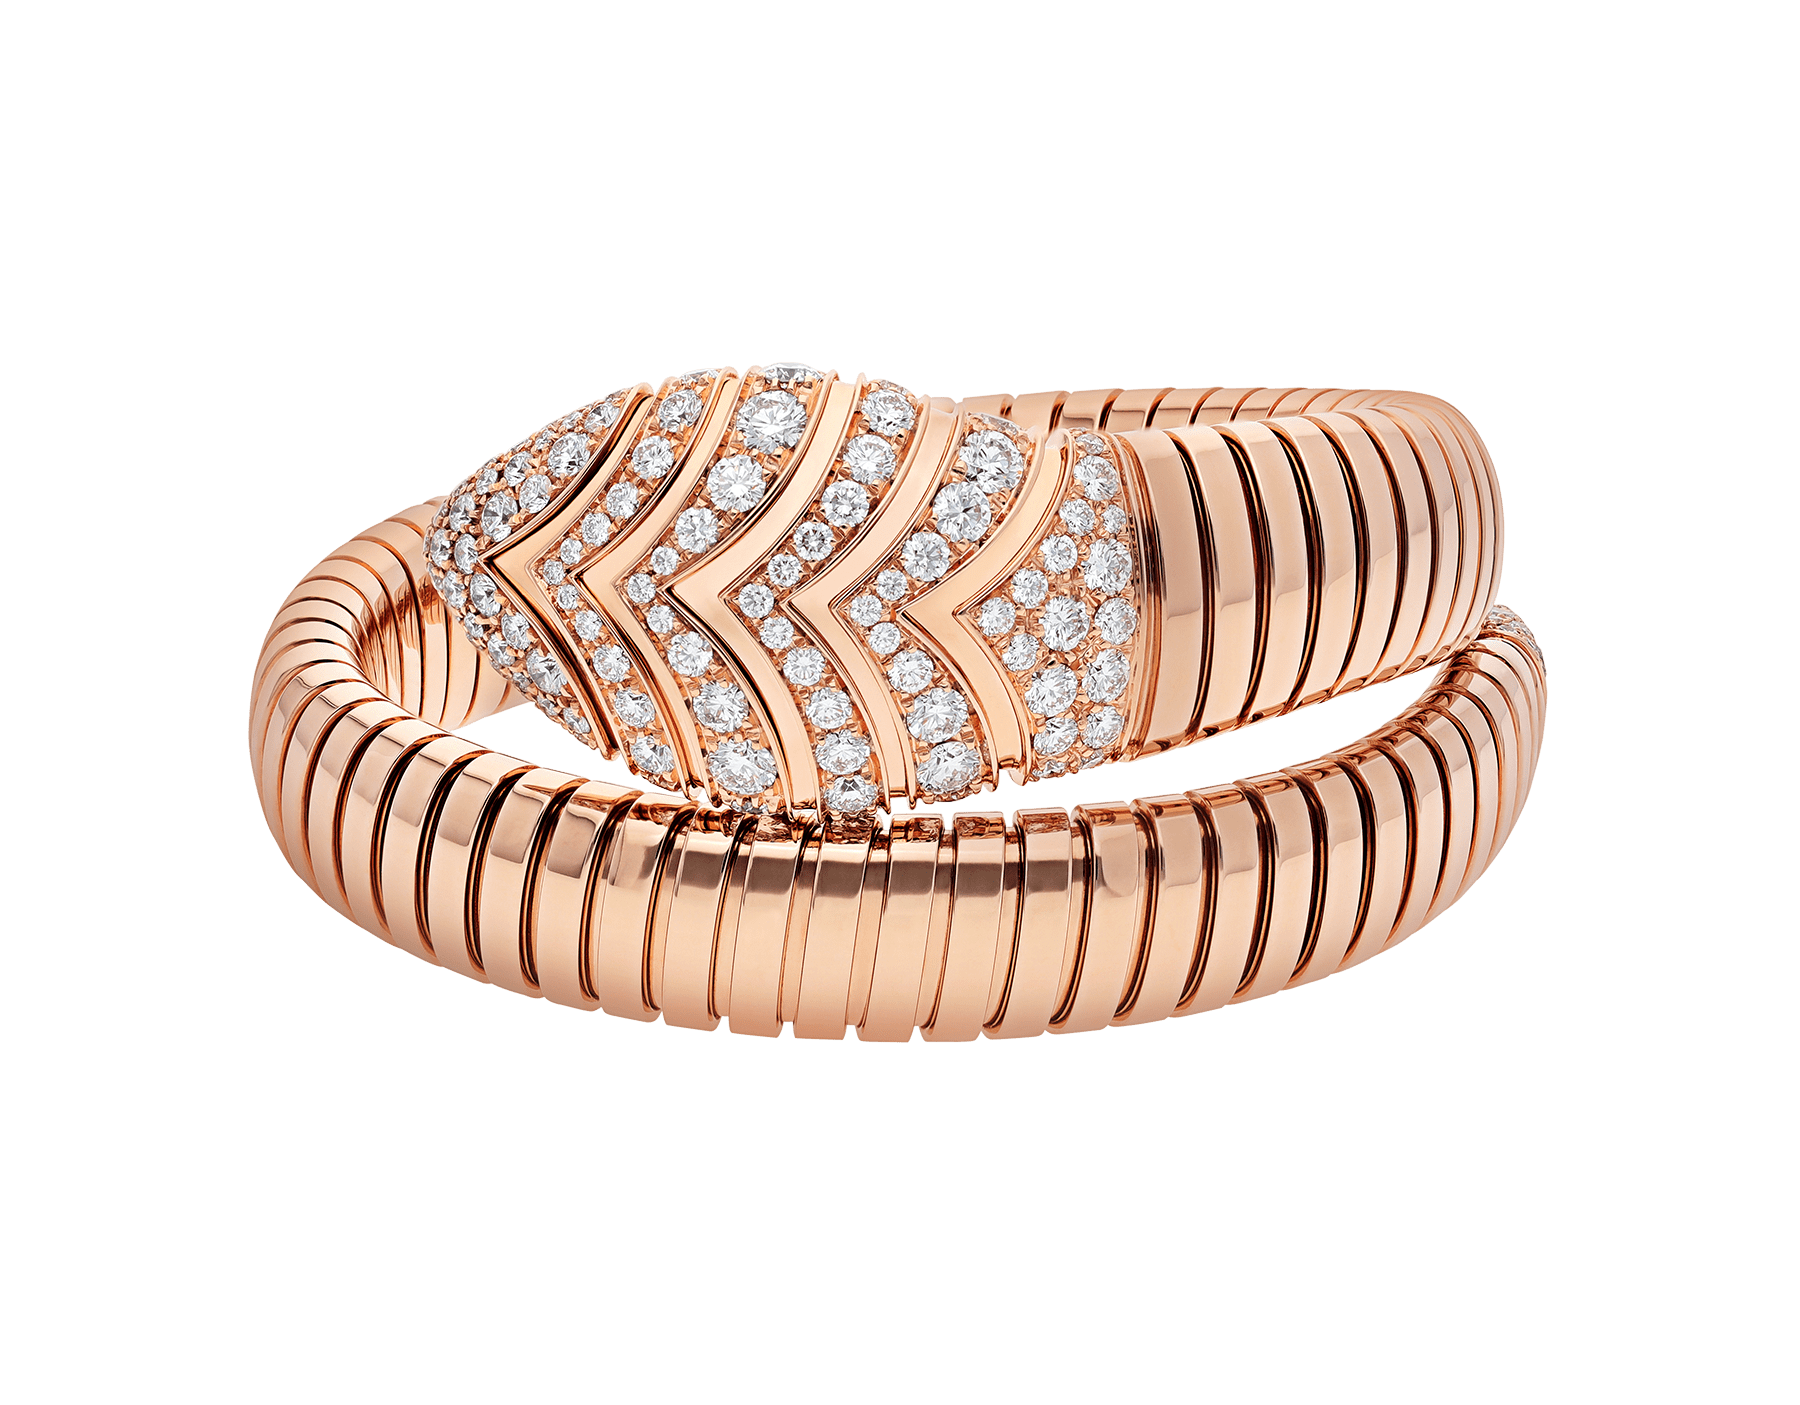 Serpenti Tubogas single spiral bracelet in 18 kt rose gold, set with pavé diamonds on the head and the tail. BR856845 image 2